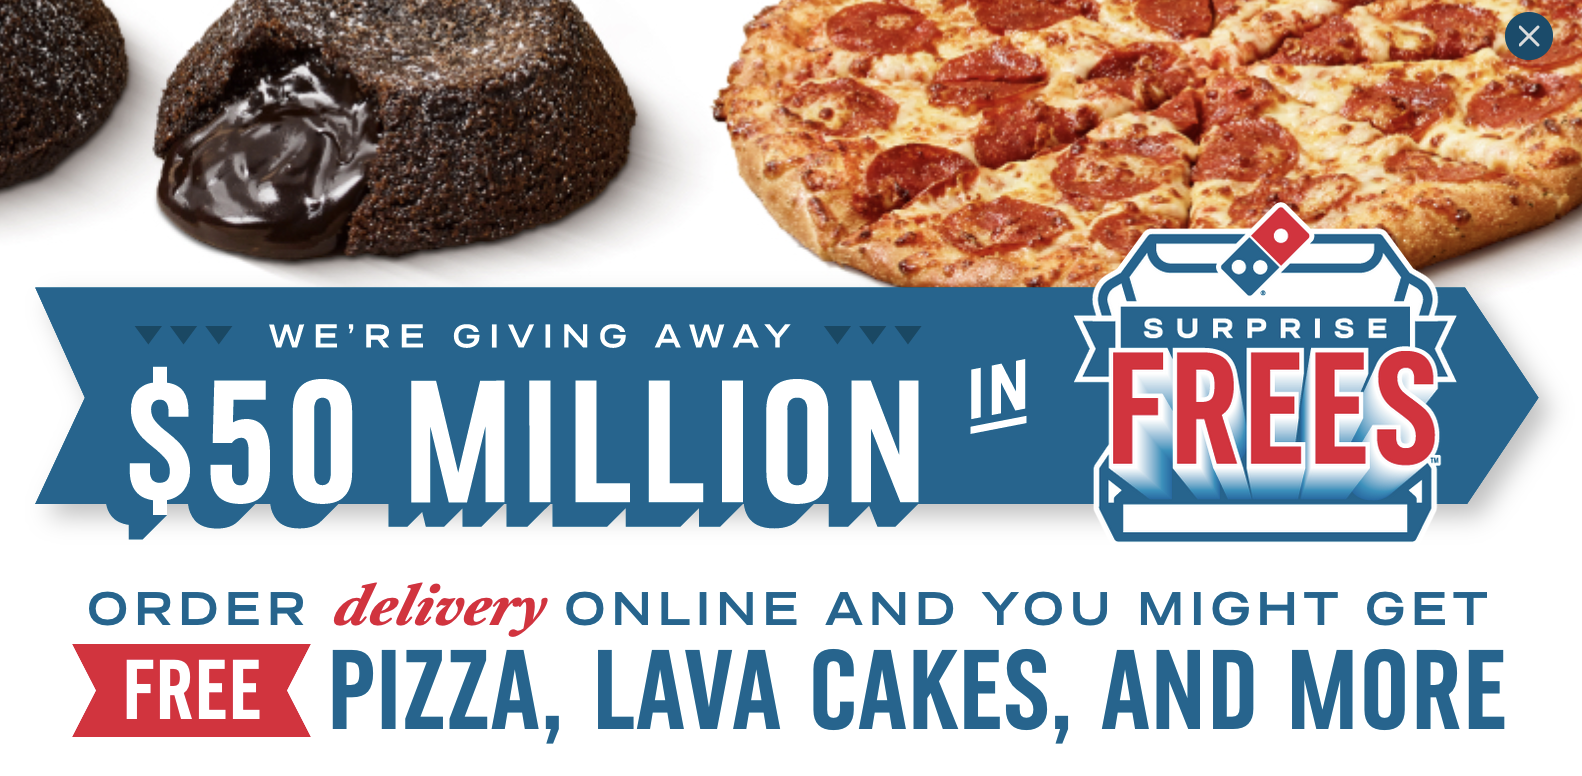 Win Free Food During Our Surprise Frees Contest